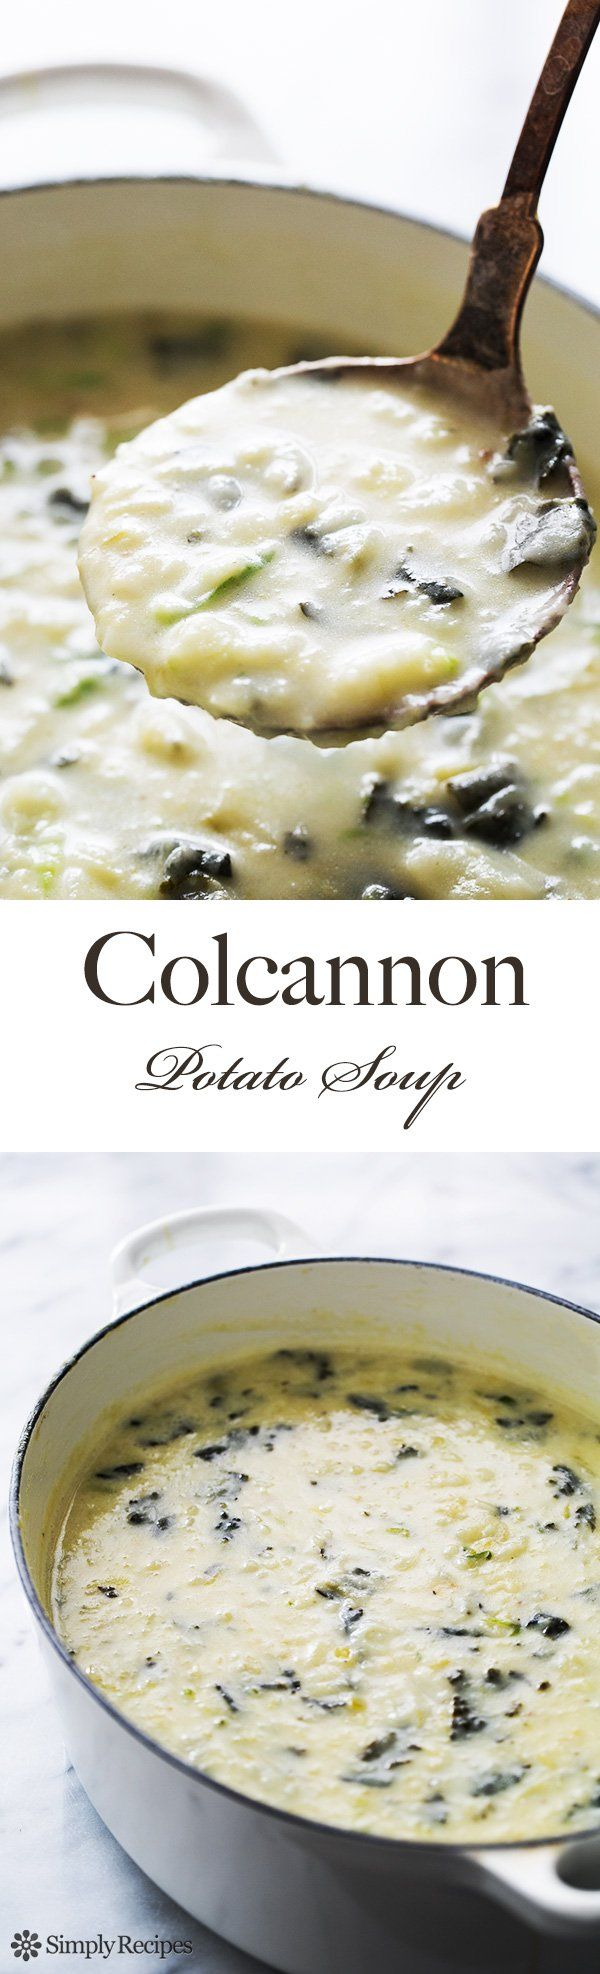 Hearty Colcannon Potato Soup! Like Irish colcannon, but in soup form. With russet potatoes, leeks, cabbage, kale, stock, and cream. This soup will keep you warm on a cold winter day. And it's so easy to make! #glutenfree #irishfood